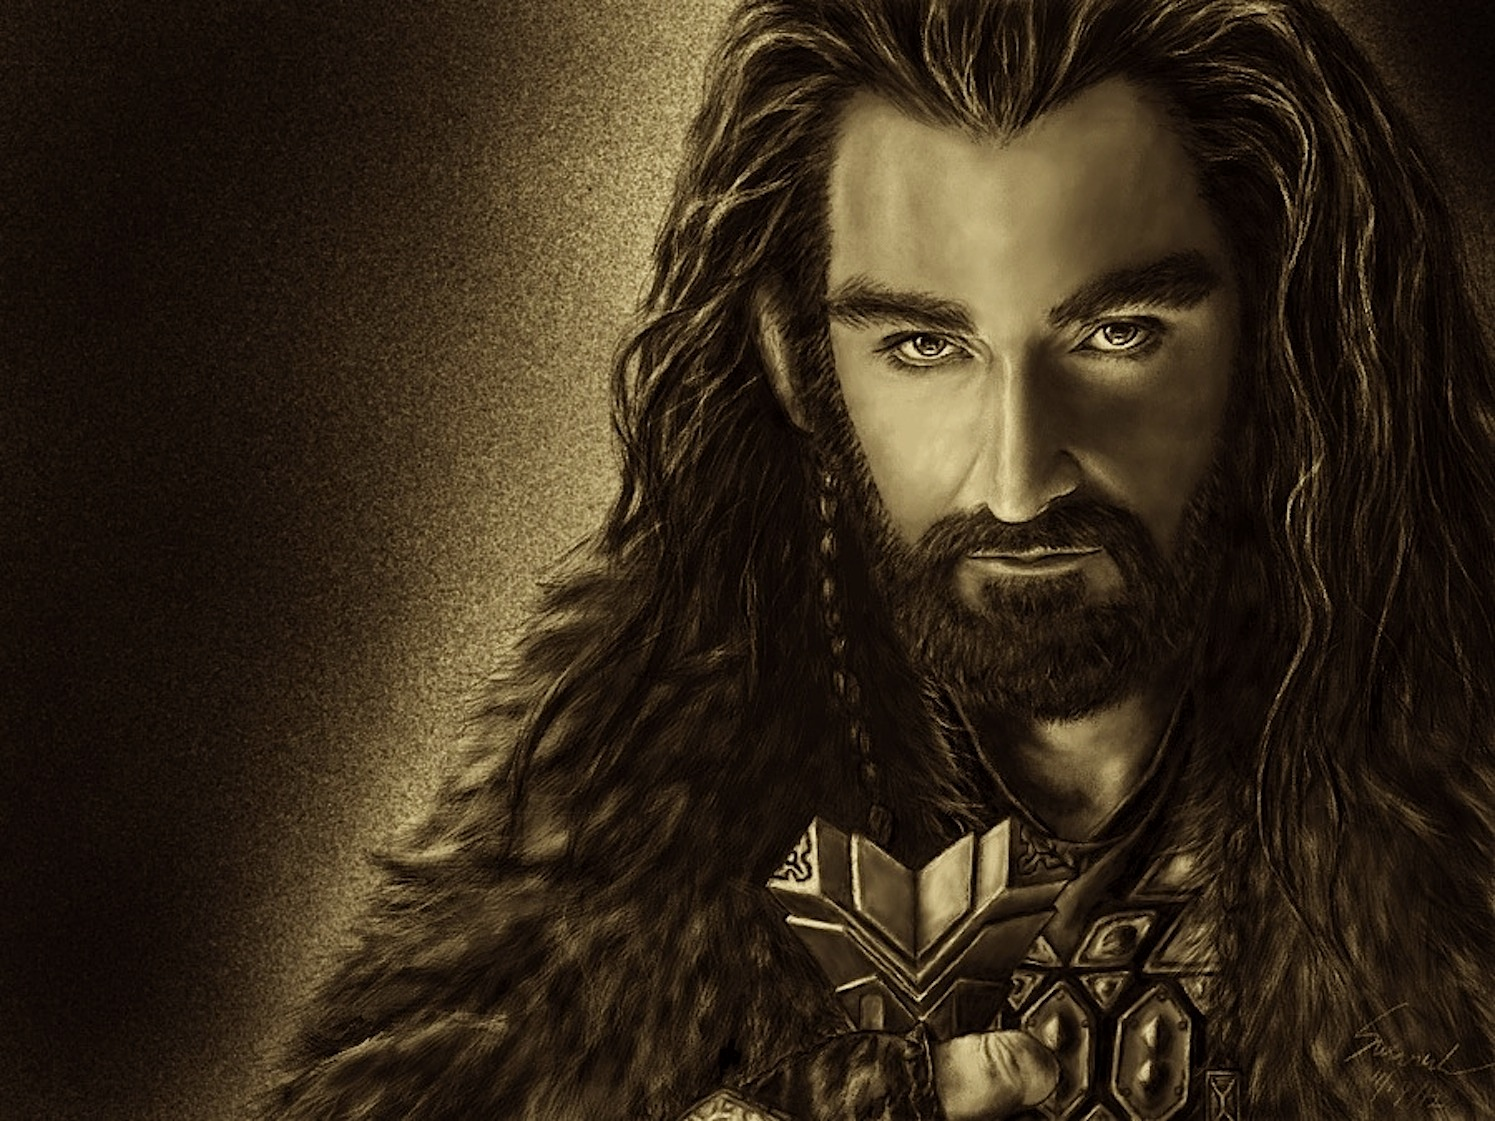 Thorin Oakenshield by Aster31